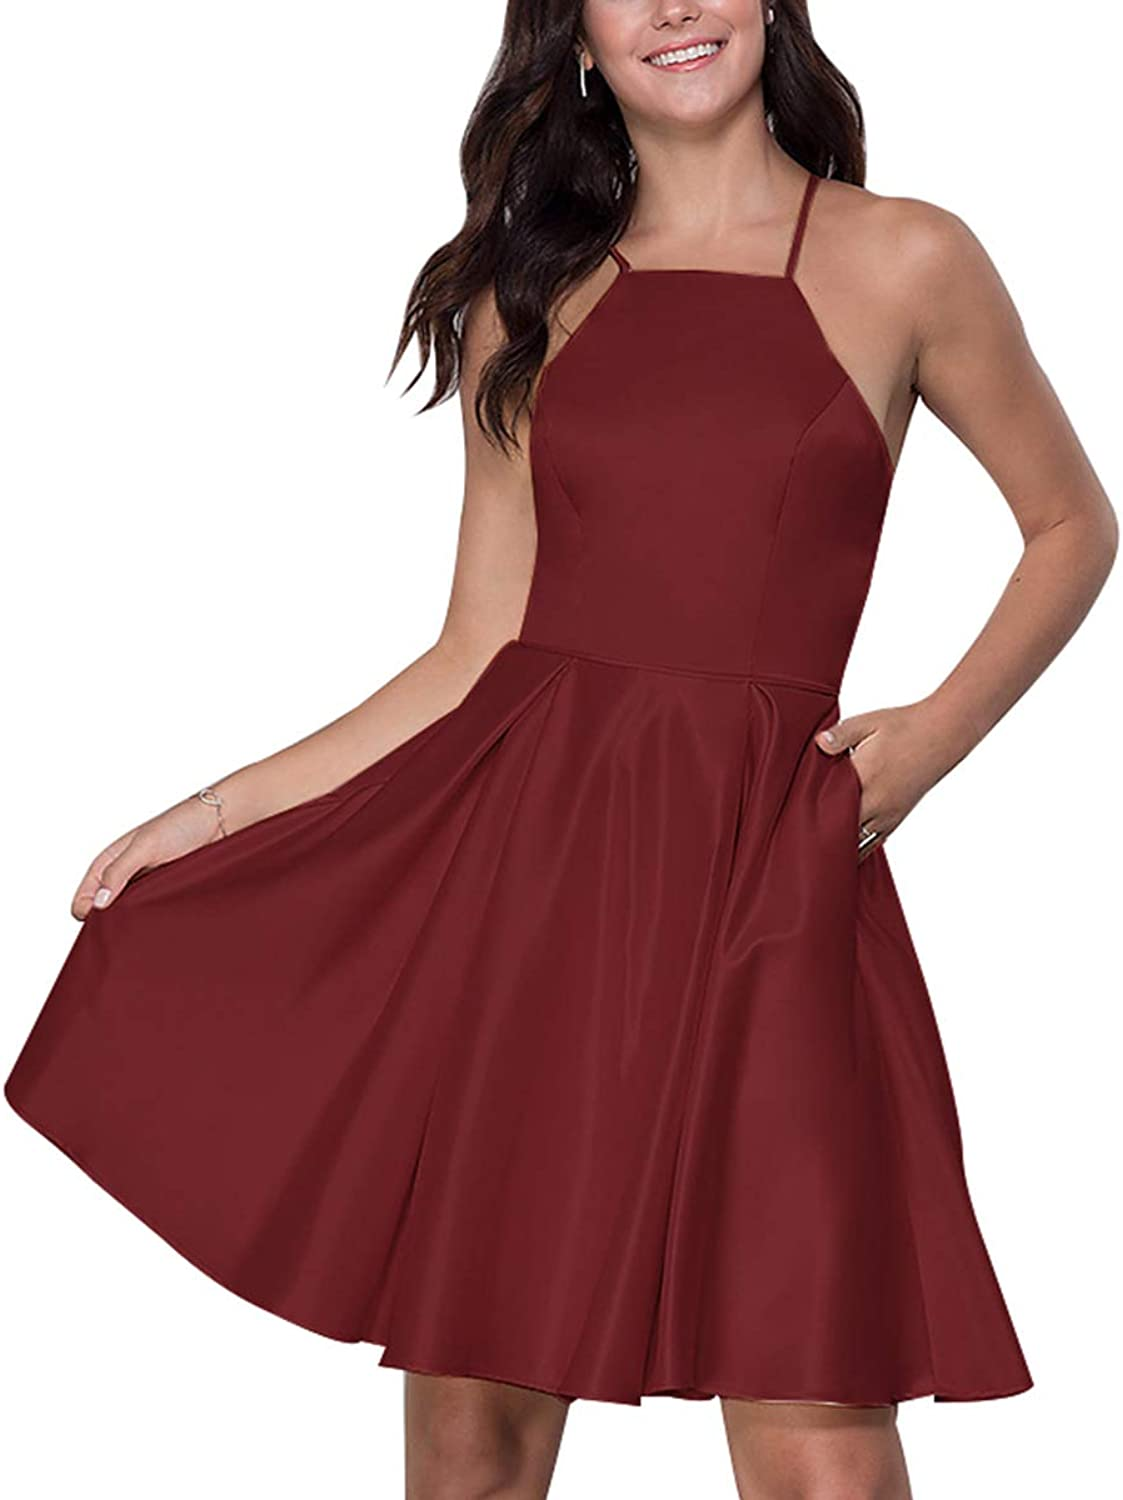 Rjer Spaghetti Strap Homecoming Dresses Short A Line Satin Evening Gowns for Women 2019 with Pockets